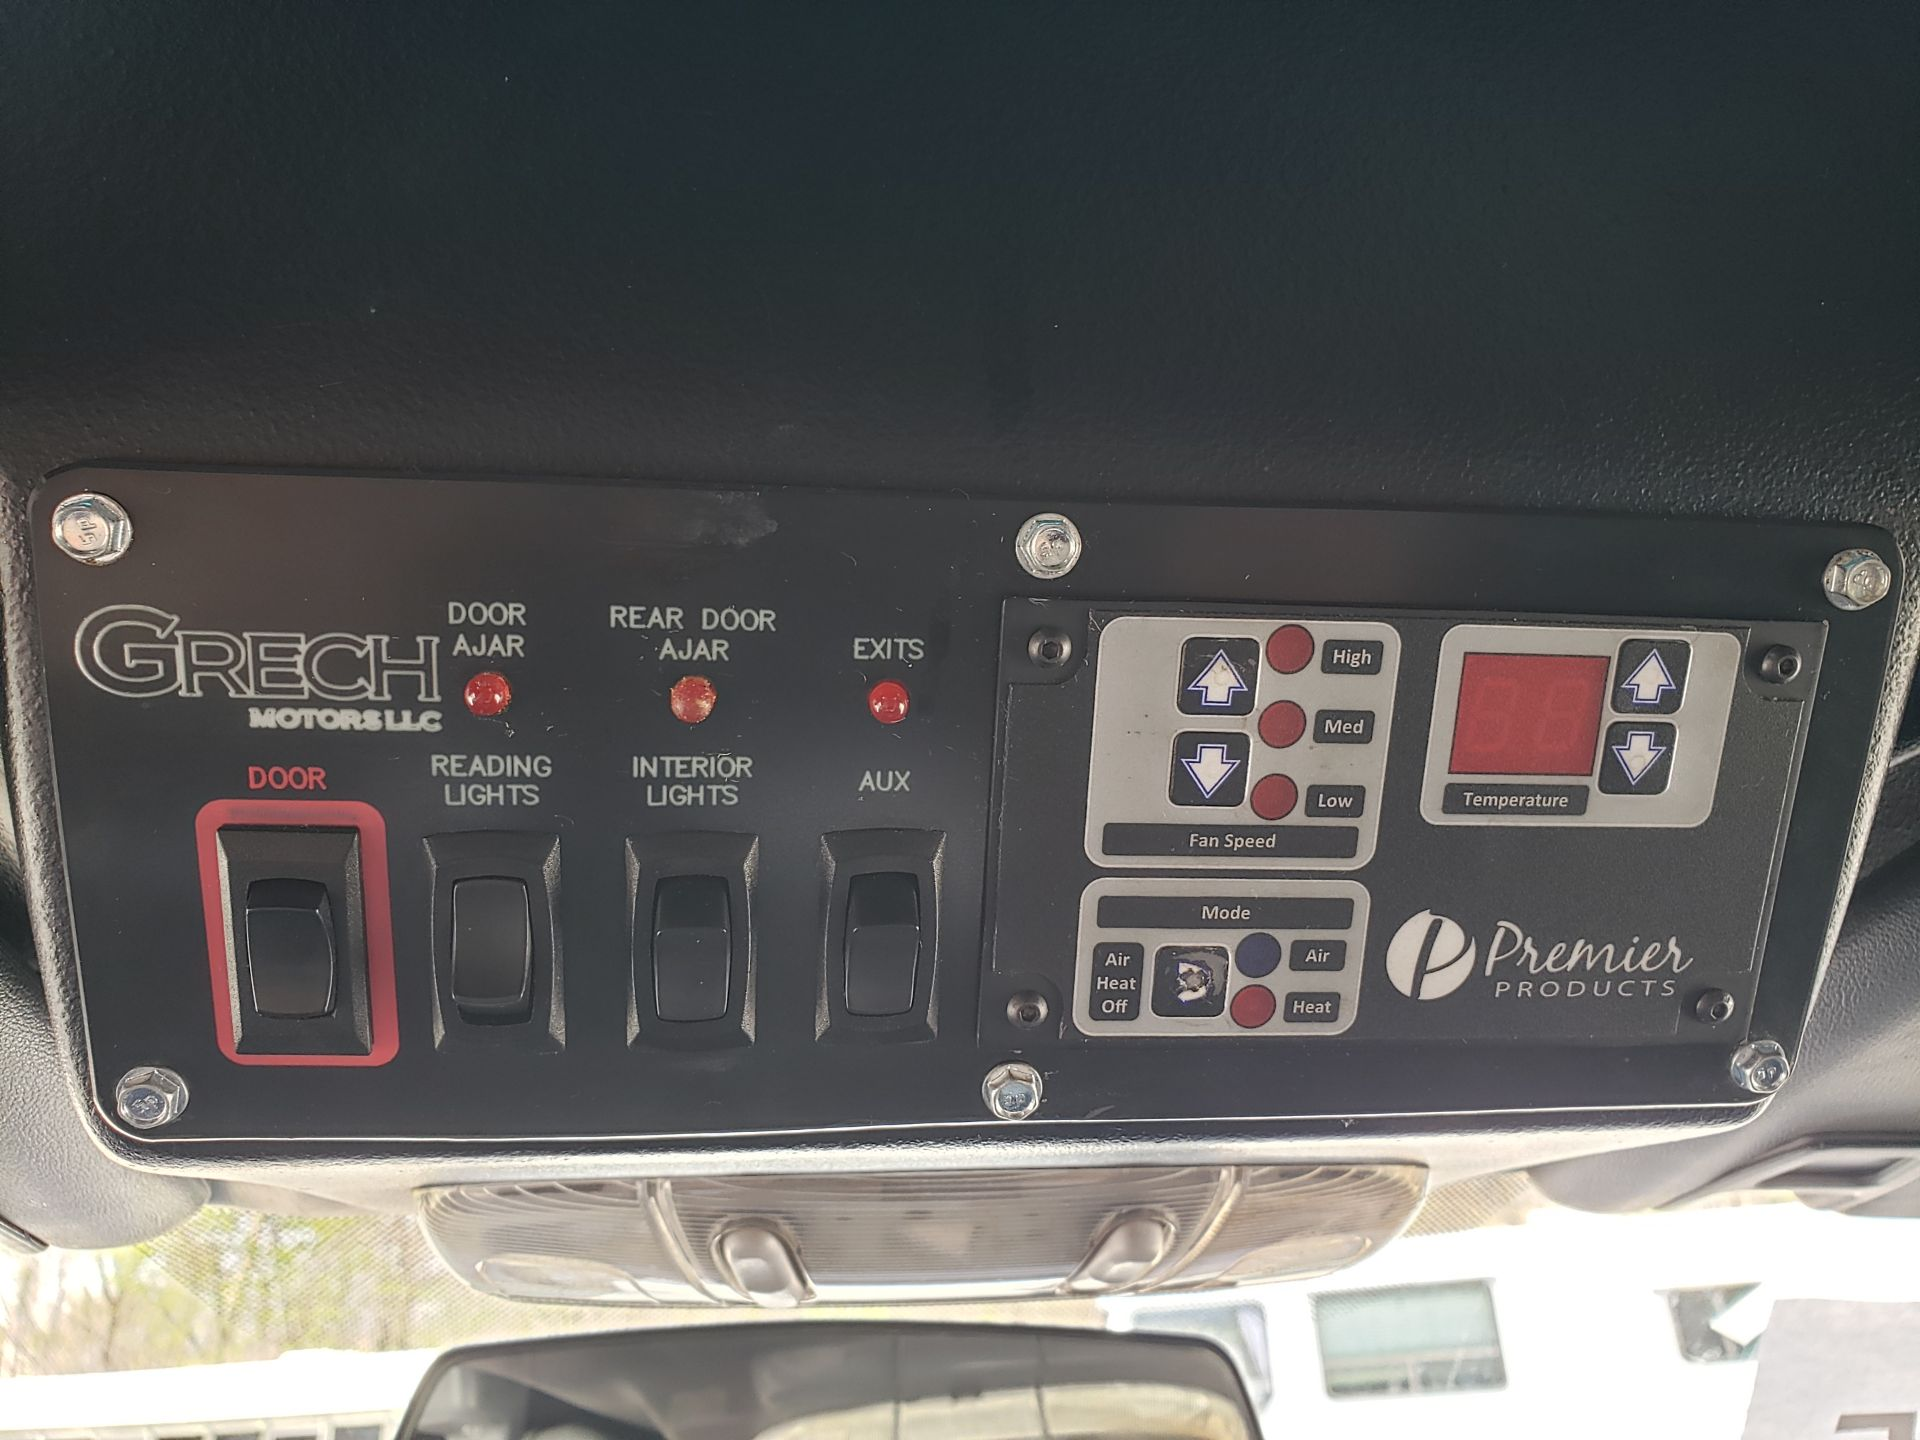 2013 Ford F550SD XL Grech Motors 33-Pass Shuttle Bus - Image 14 of 17